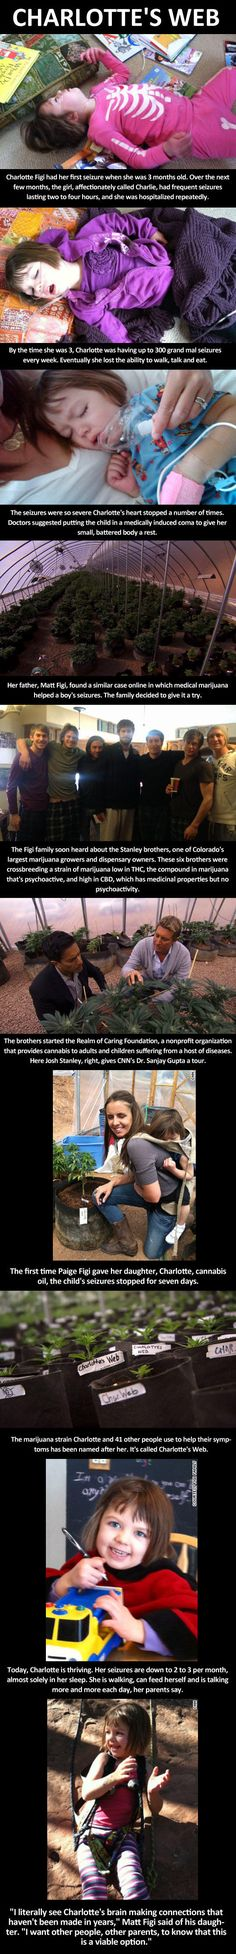 This Is what happens When A Little Girl Gives Marijuana A Try... - Democratic Underground